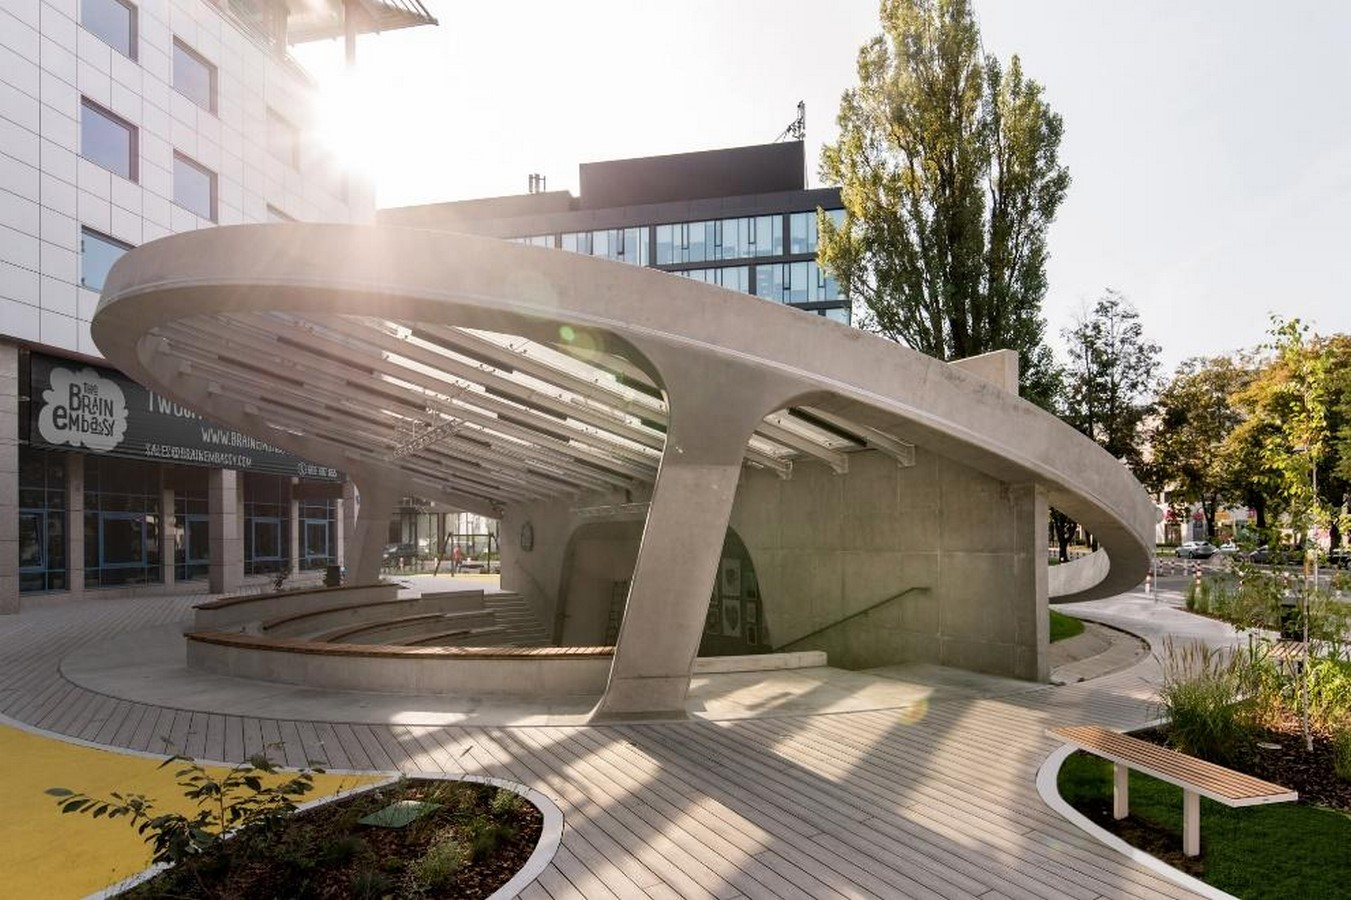 A concrete amphitheater as an 'open, democratic space' in Warsaw designed by Lina - Sheet10